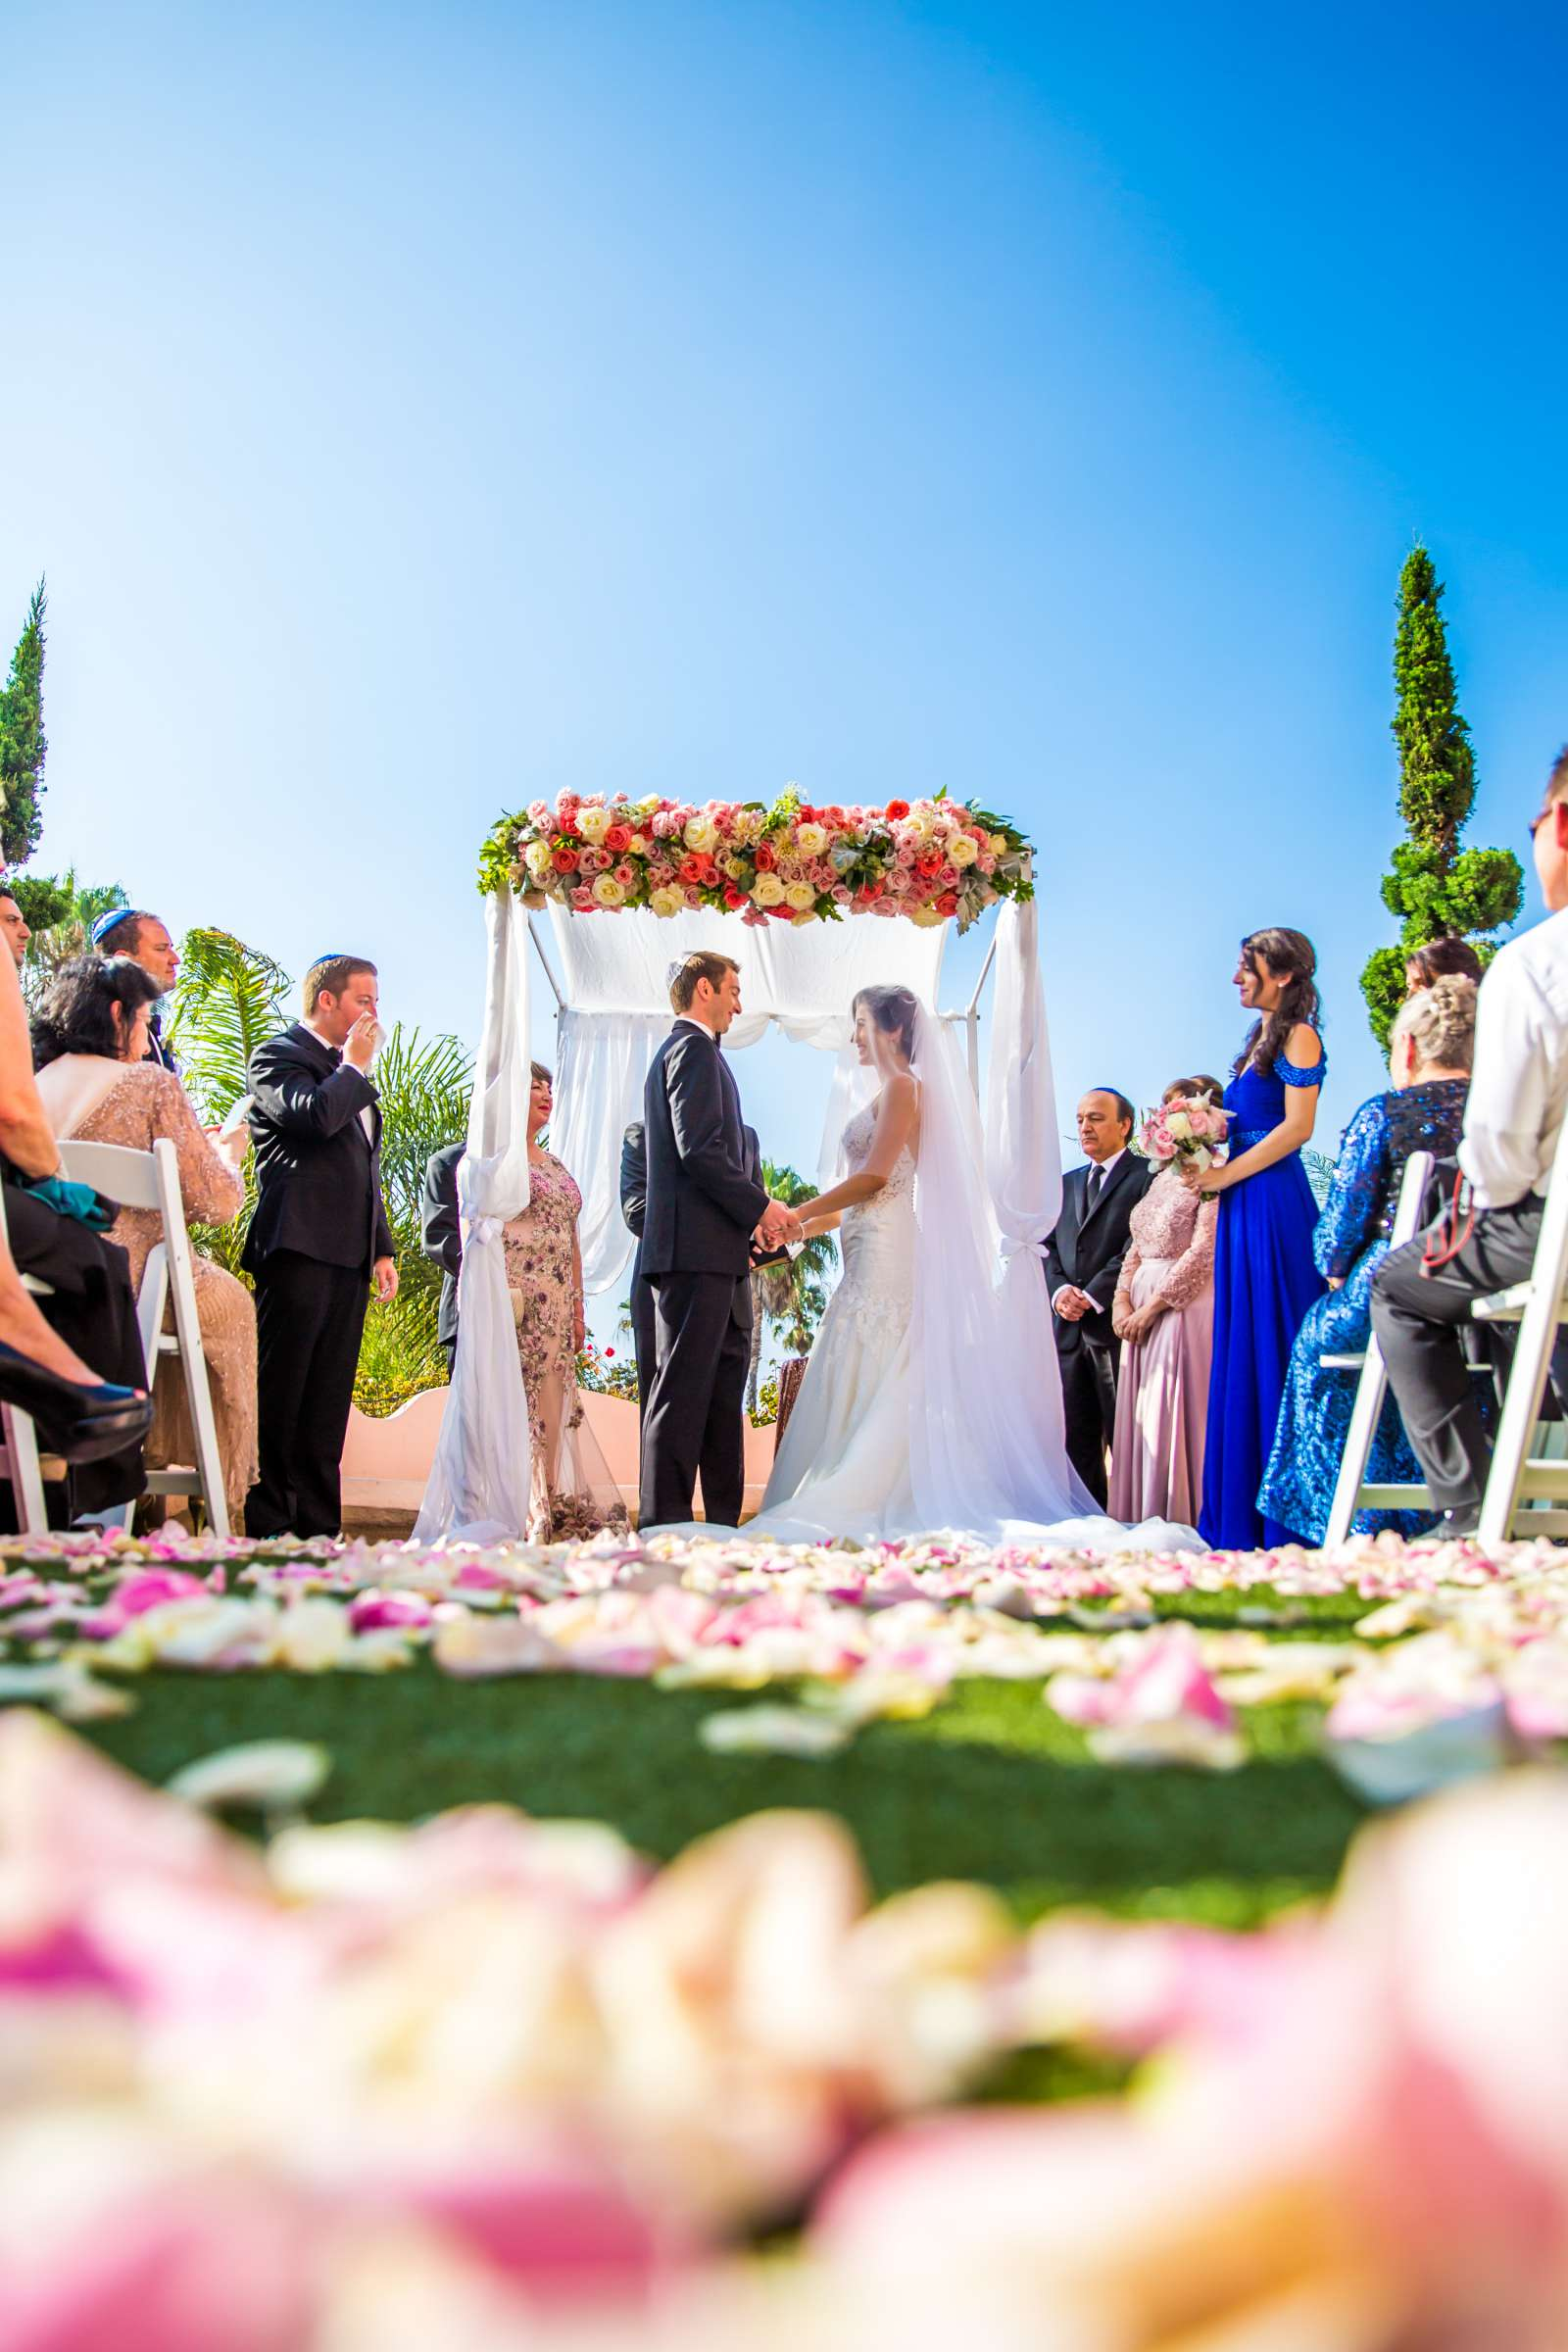 La Valencia Wedding coordinated by First Comes Love Weddings & Events, Viviane and Joshua Wedding Photo #69 by True Photography